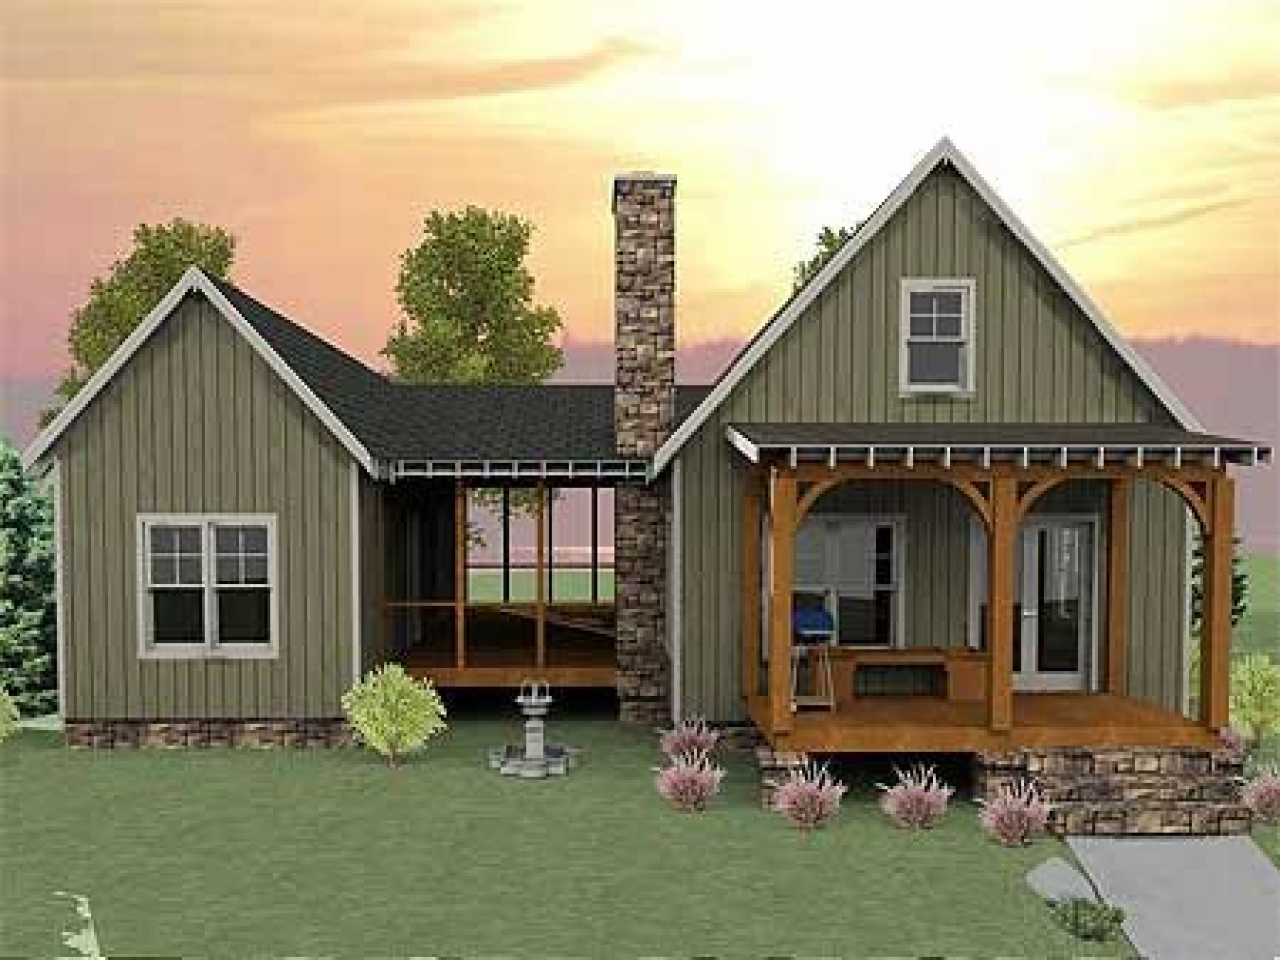 small cottage house plans with porches small house plans with screened porch small house plans with basement tiny house plans with 390